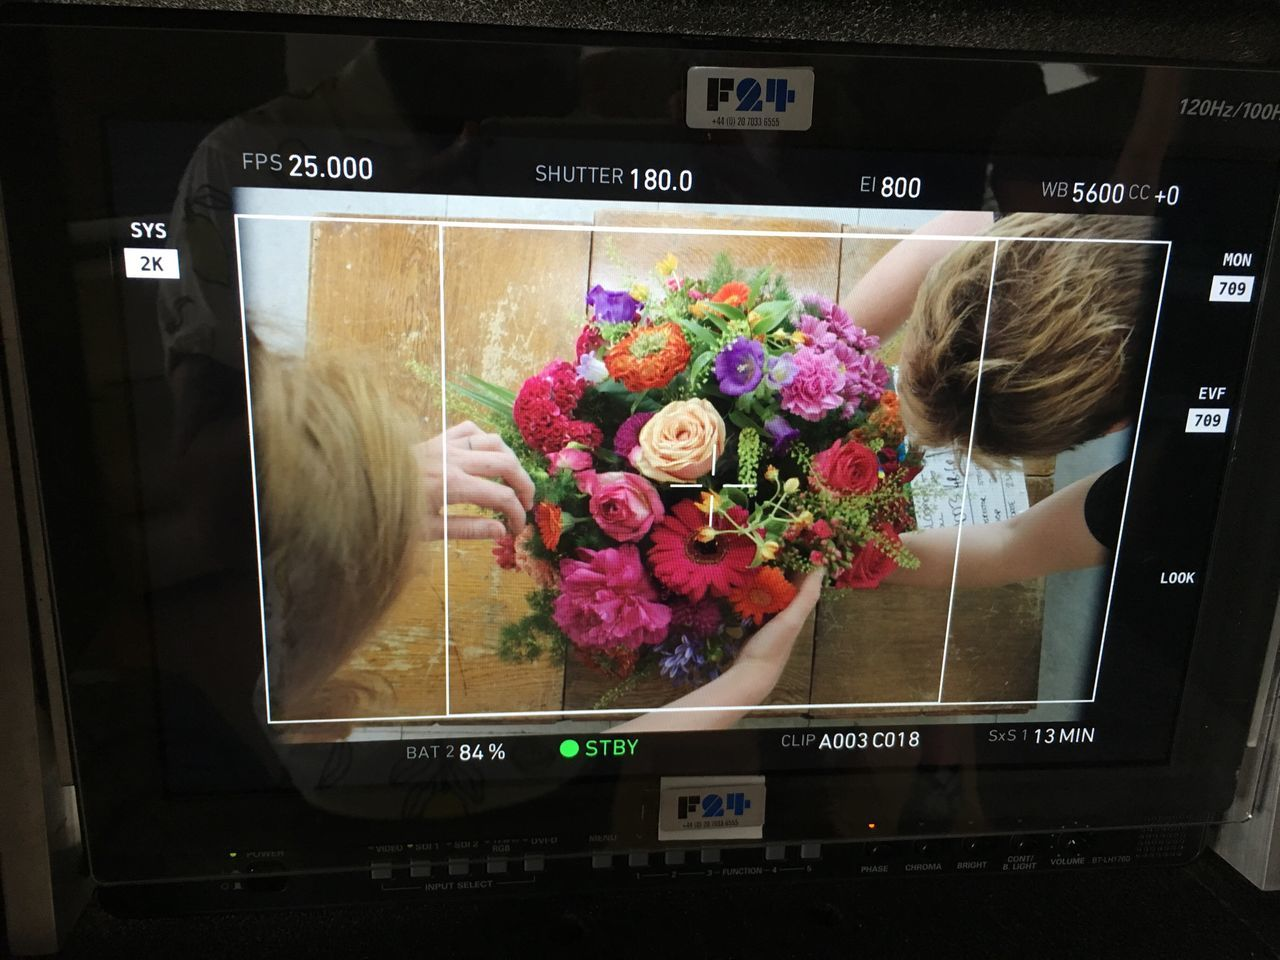 On set. Flower Bouquet Indoors  Close-up Technology No People Freshness Fragility Day Nature Film Camera